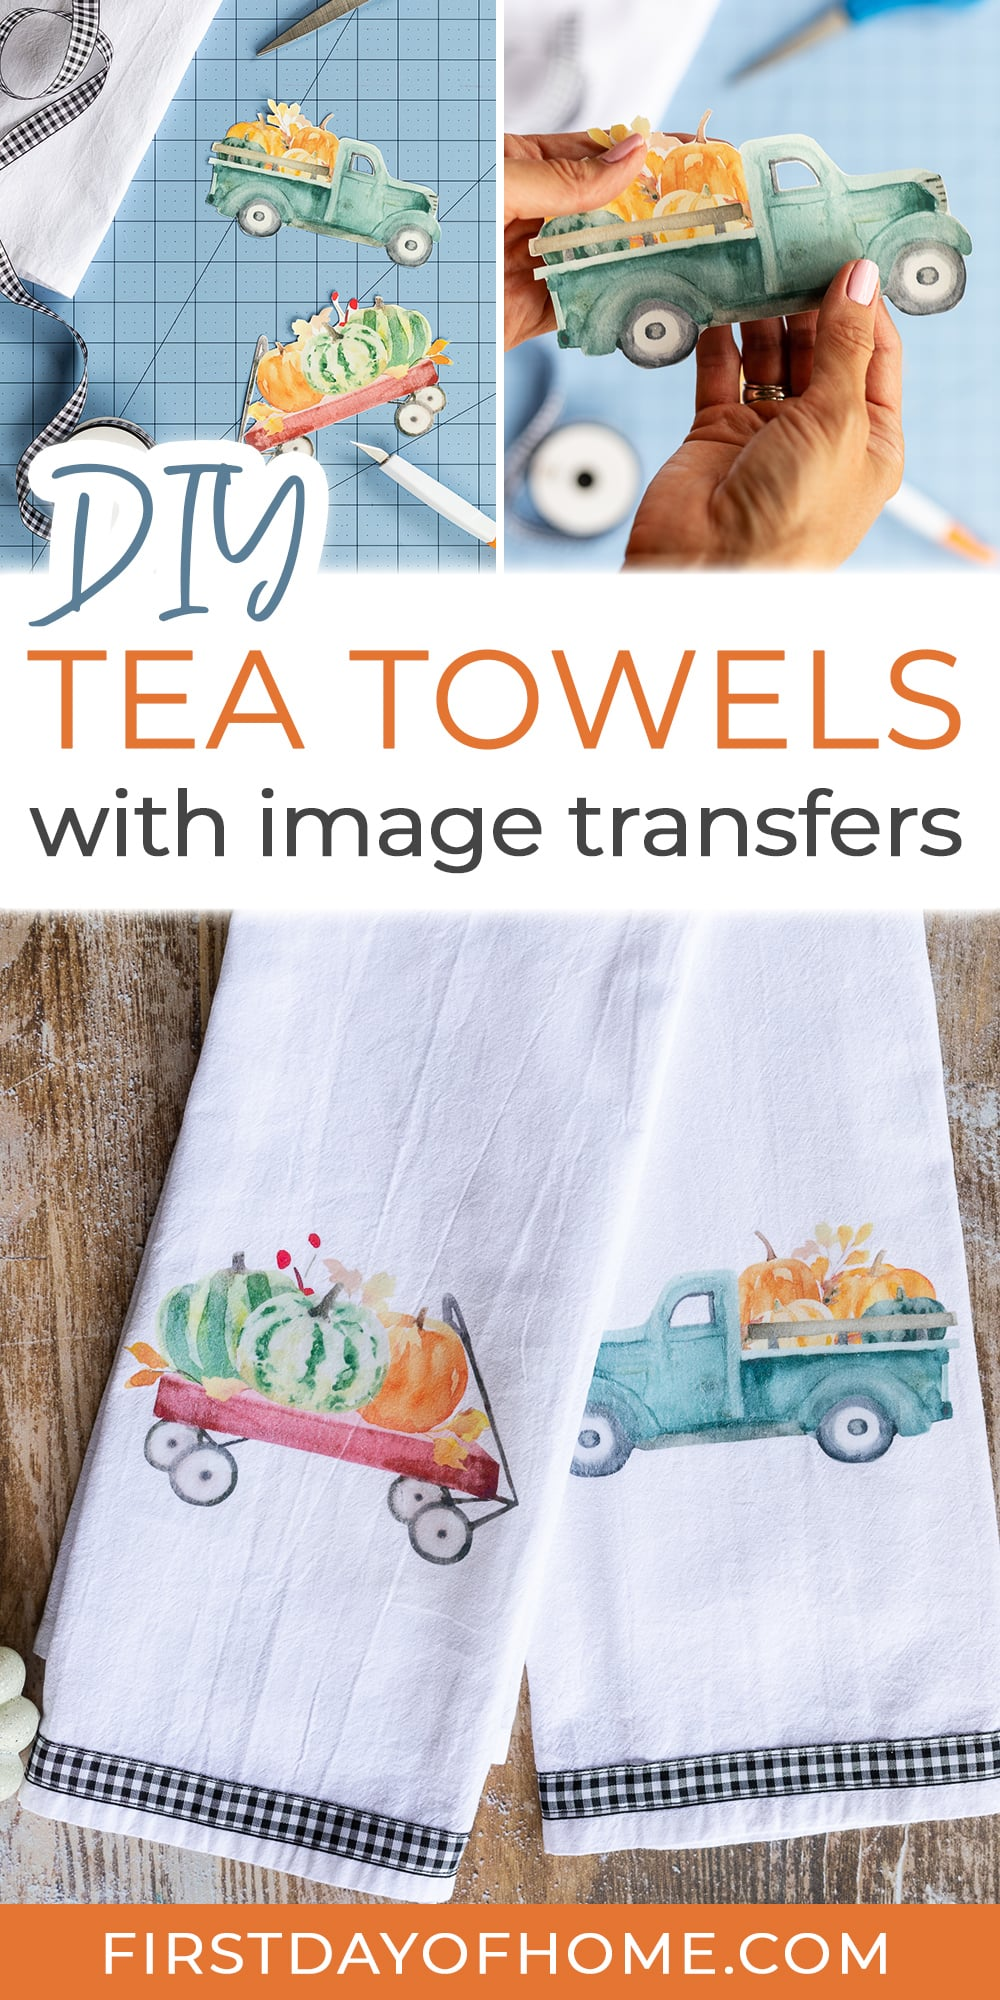 """Steps showing how to make DIY tea towels made with image transfer sheets. Text overlay reads """"DIY Tea Towels with image transfers."""""""